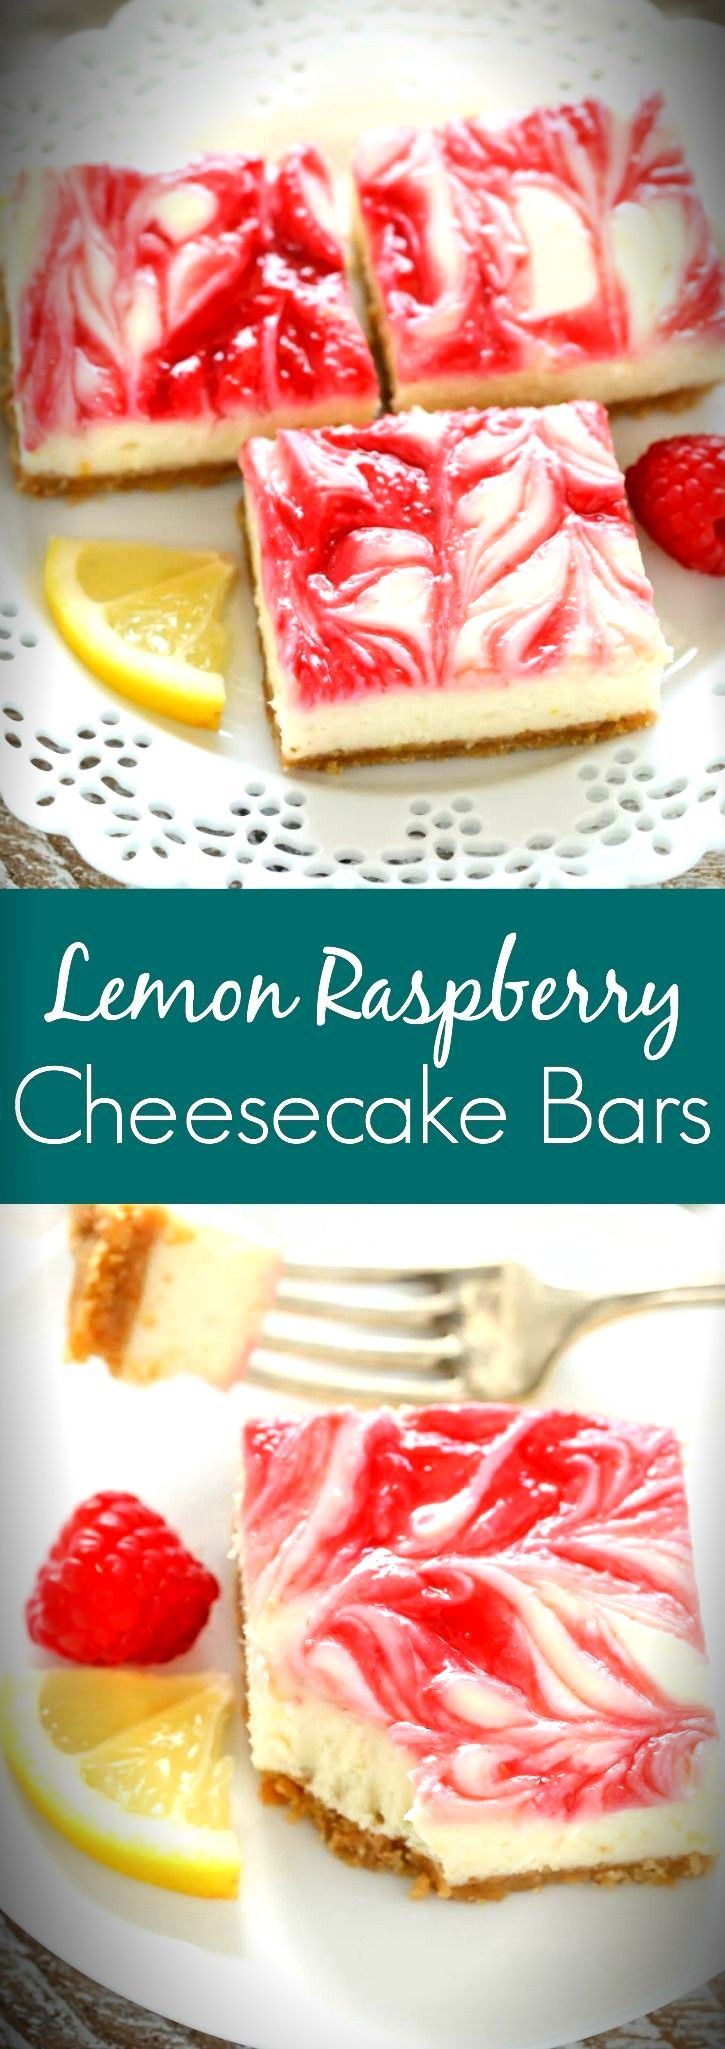 These Lemon Raspberry Cheesecake Bars feature a creamy lemon cheesecake filling with a raspberry swirl topped on a homemade graham cracker crust. #homemadegrahamcrackercrust